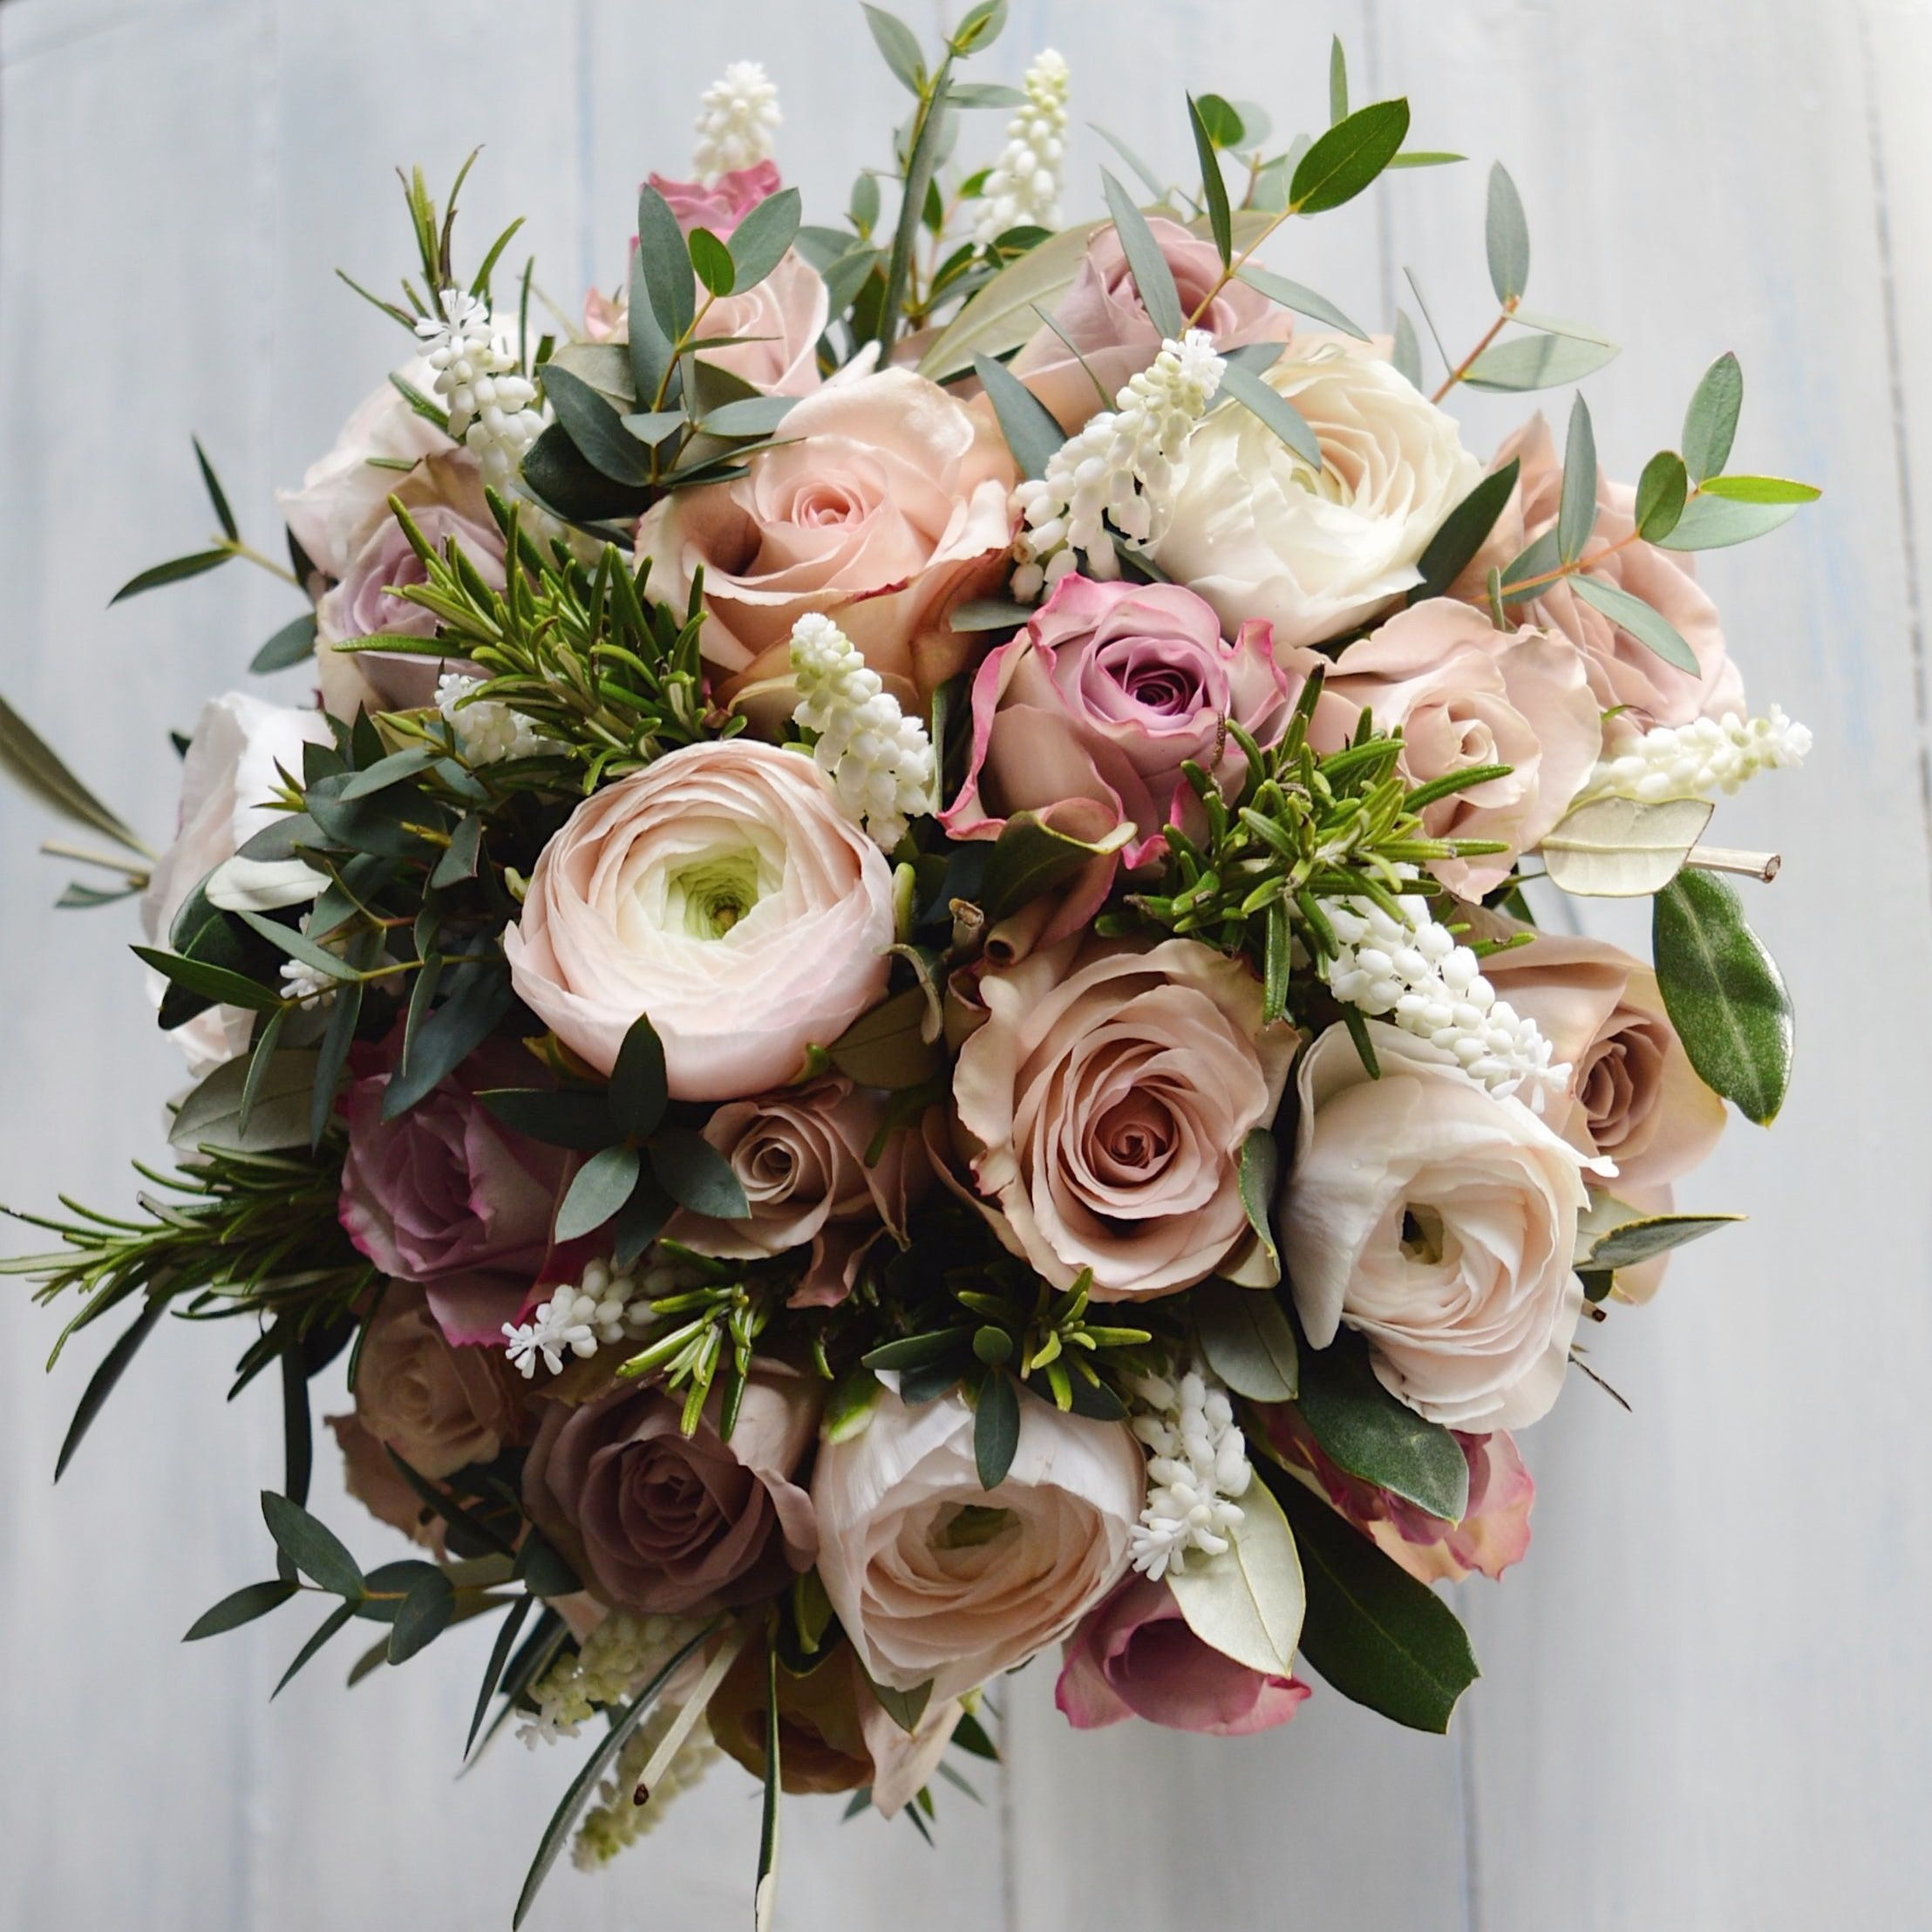 Hand tied spring bridal bouquet for farnham castle bride created by